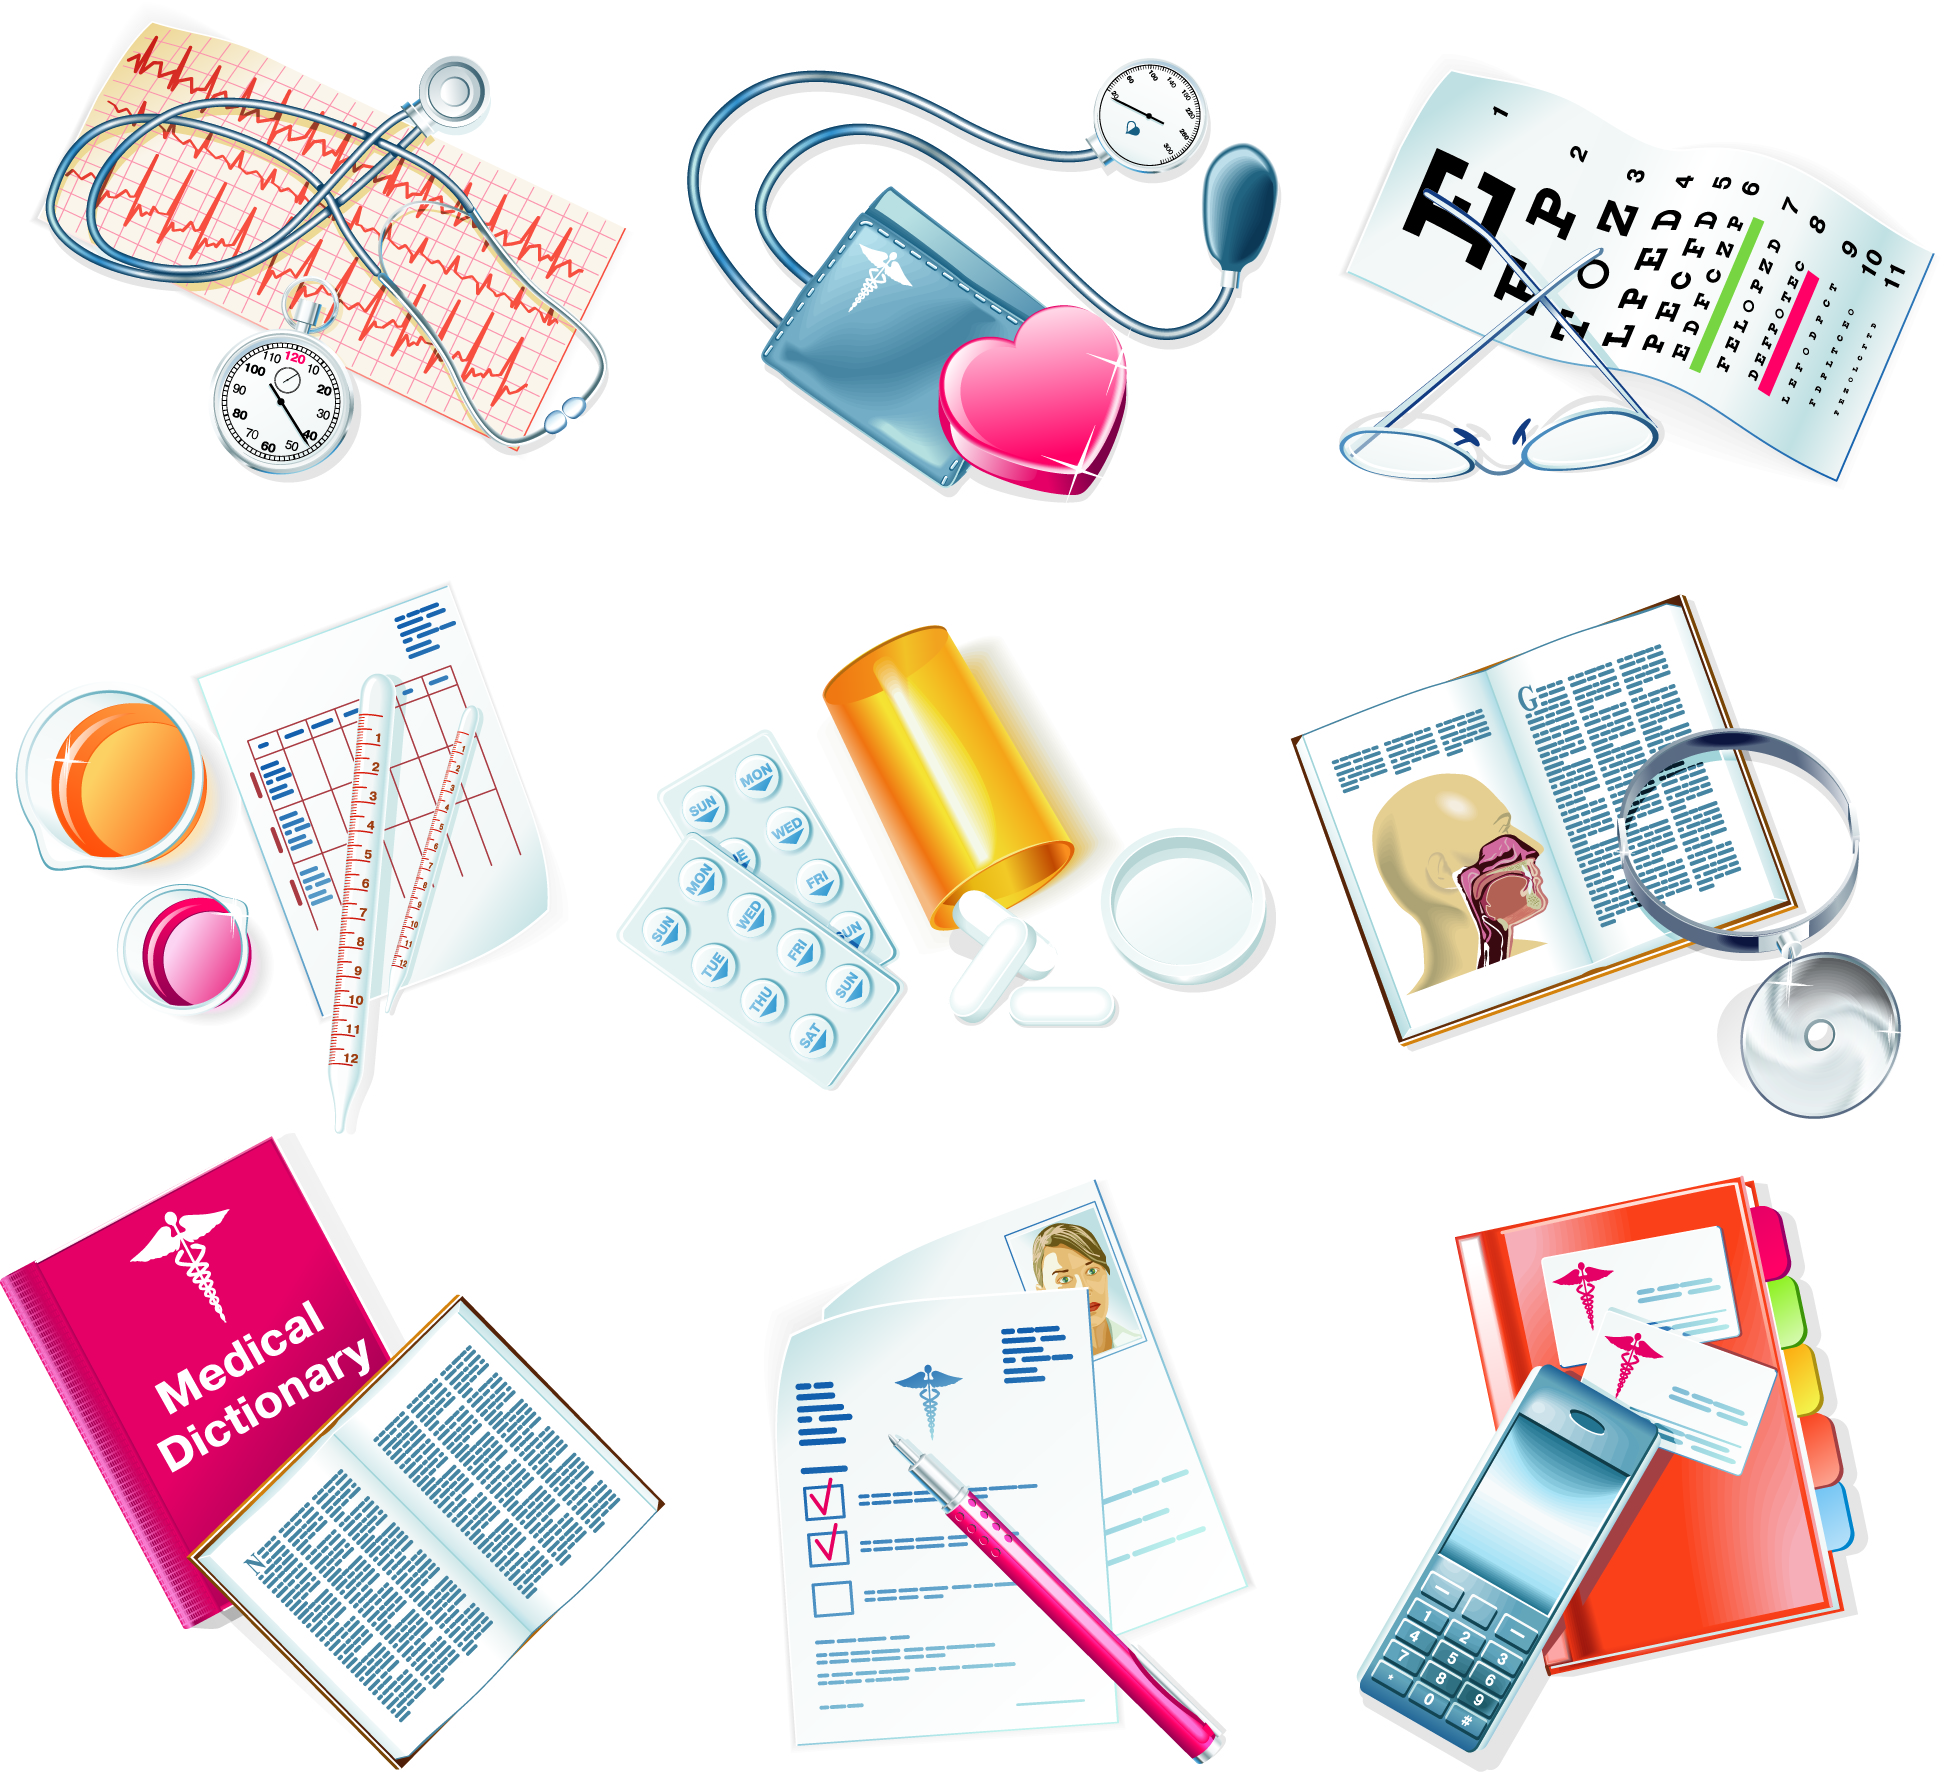 Free clipart vector image medical equipment.